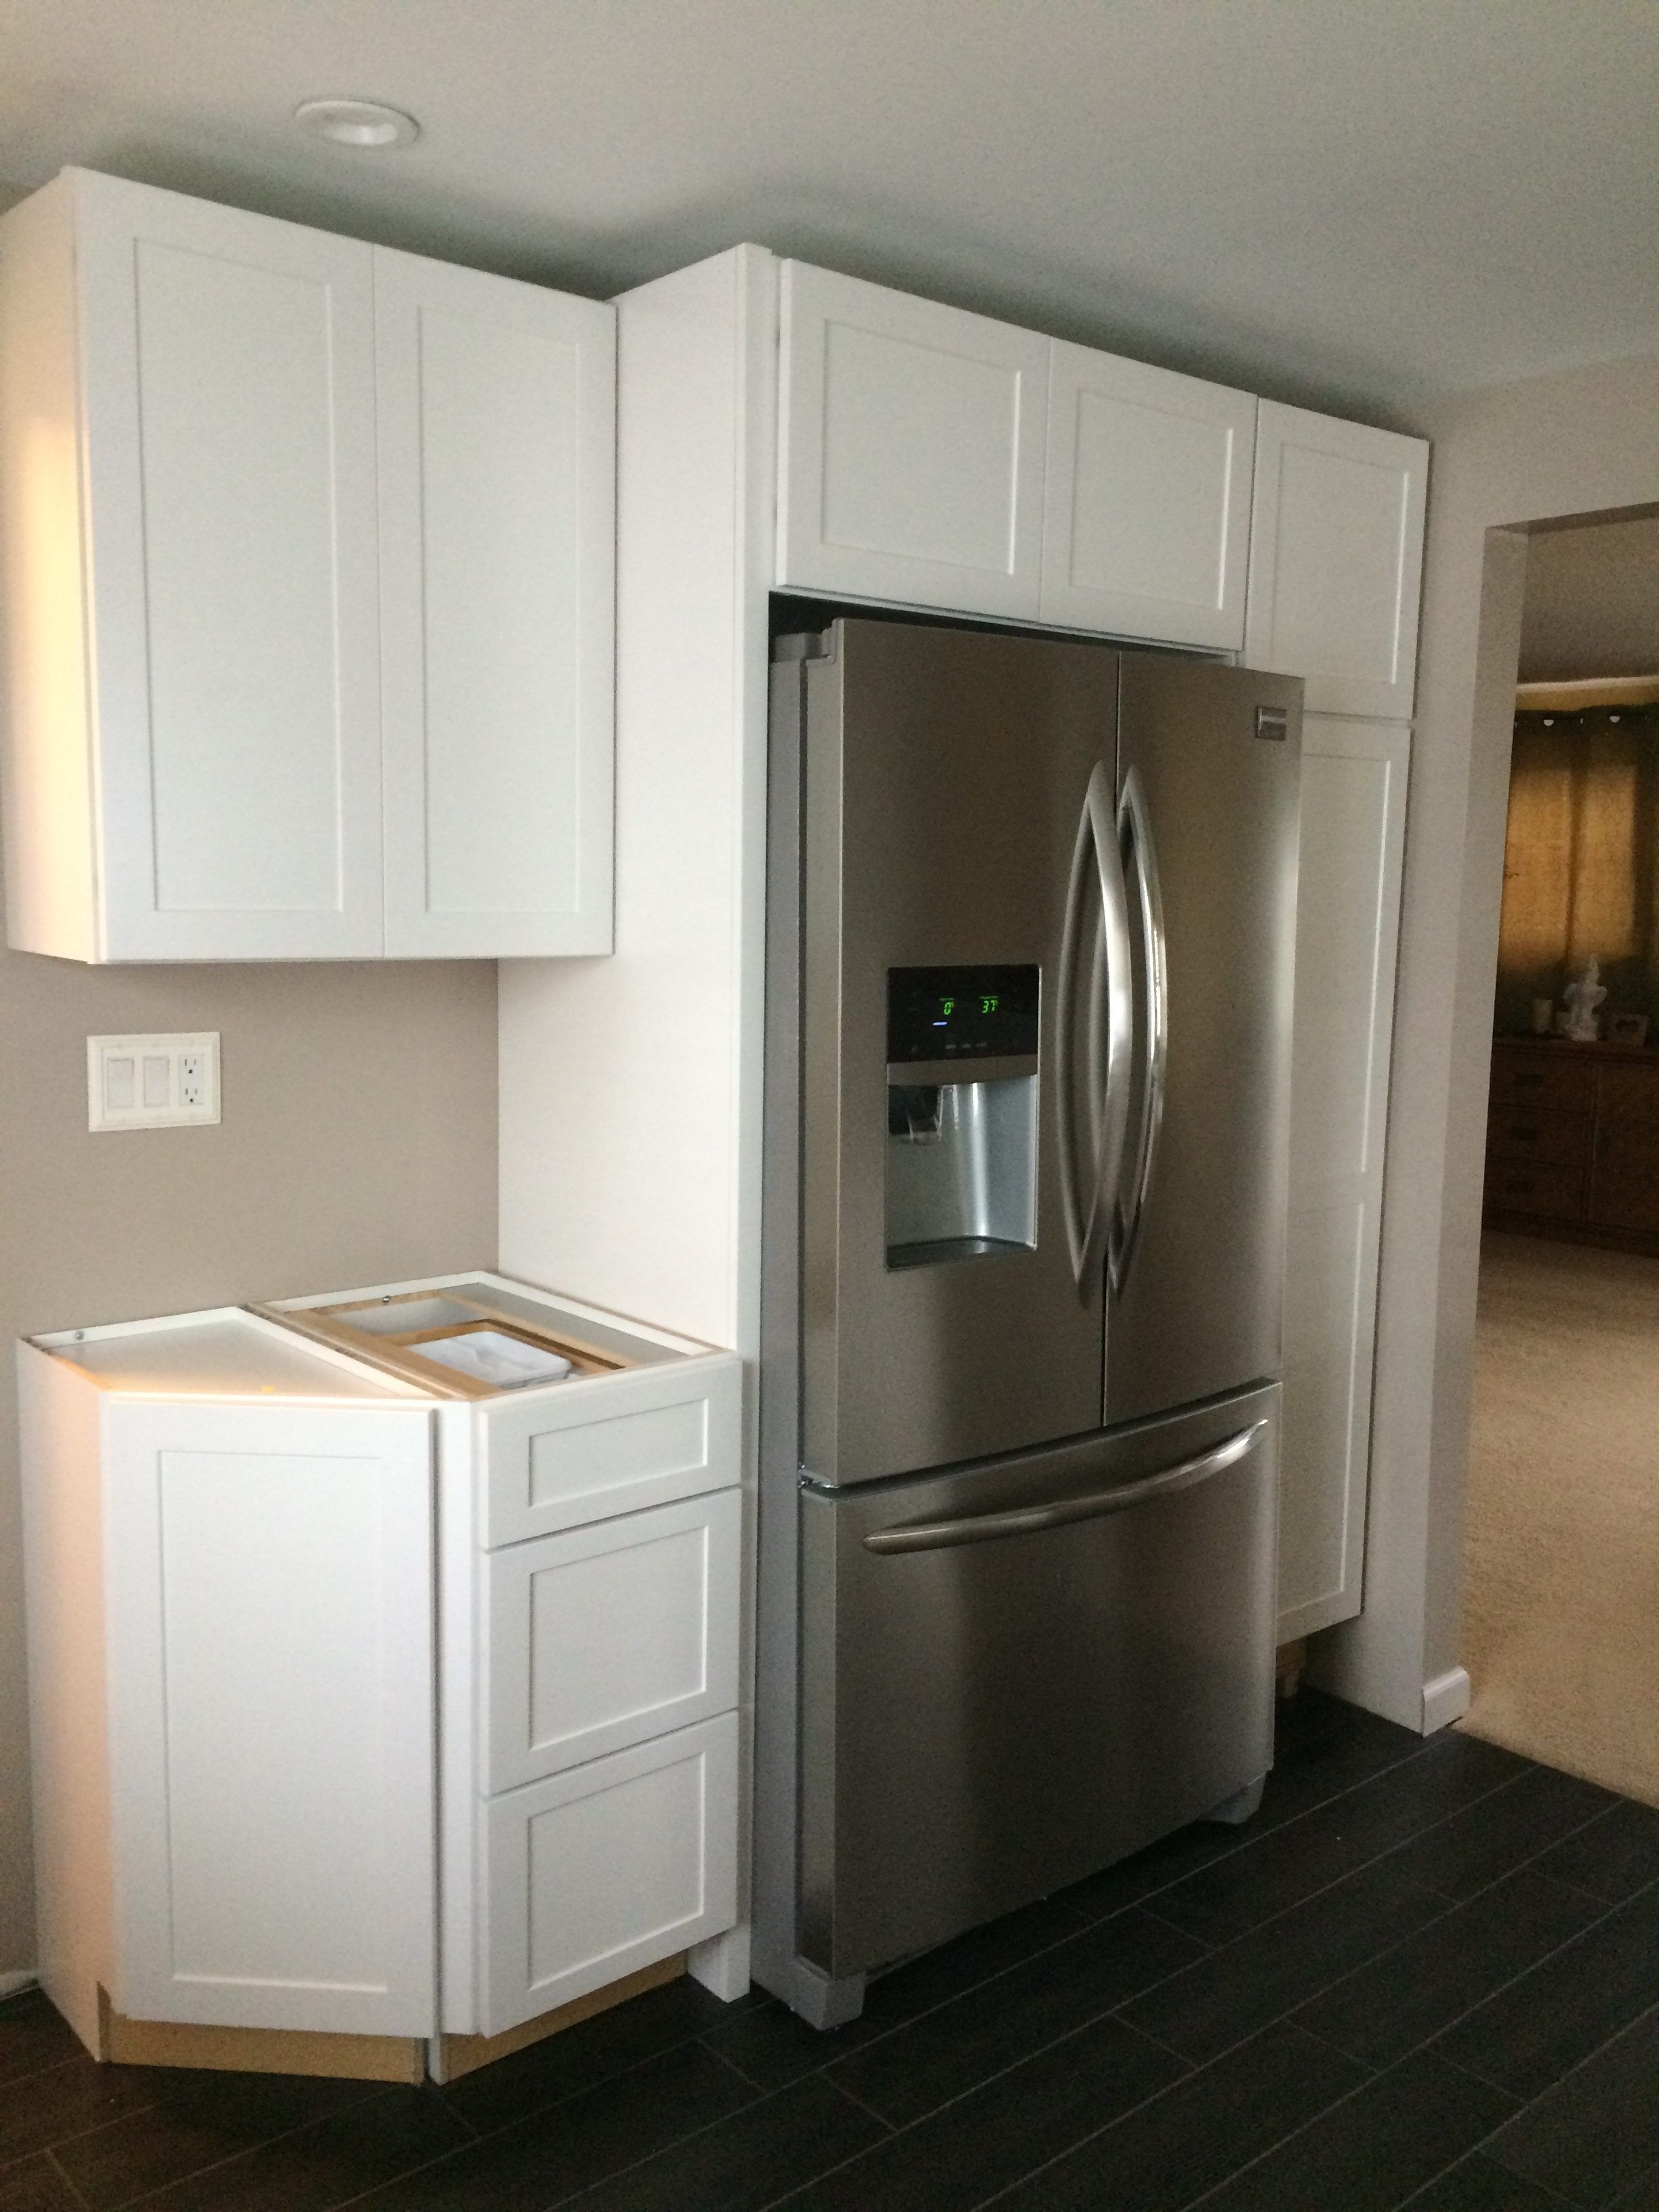 Reviews Cabinets To Go 2021 In 2020 Home Depot Kitchen Kitchen Cabinets Home Depot Unfinished Kitchen Cabinets